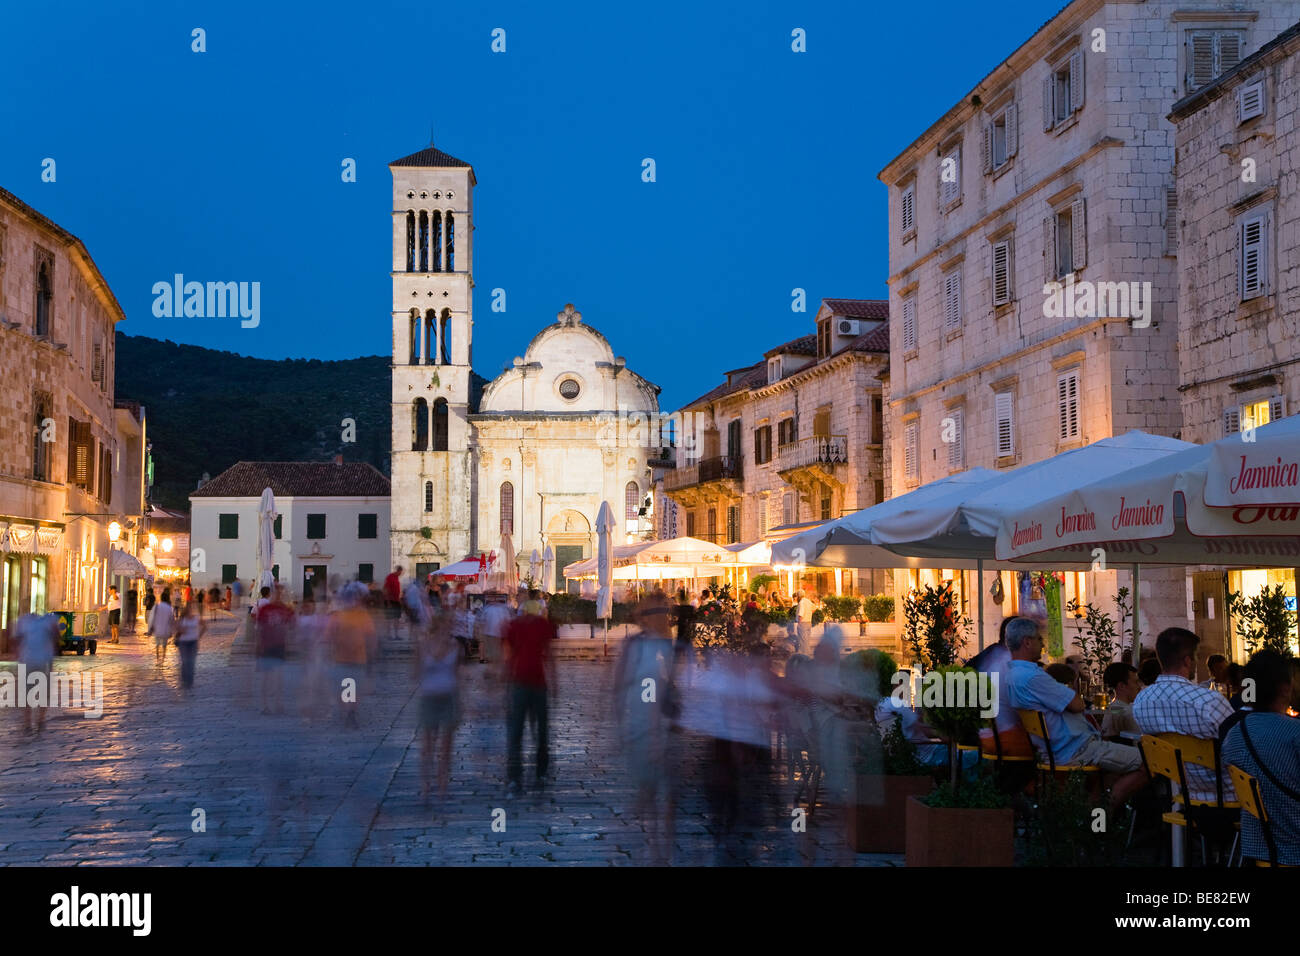 People at sidewalk cafes in the Old Town in the evening, Hvar, Hvar Island, Dalmatia, Croatia, Europe - Stock Image